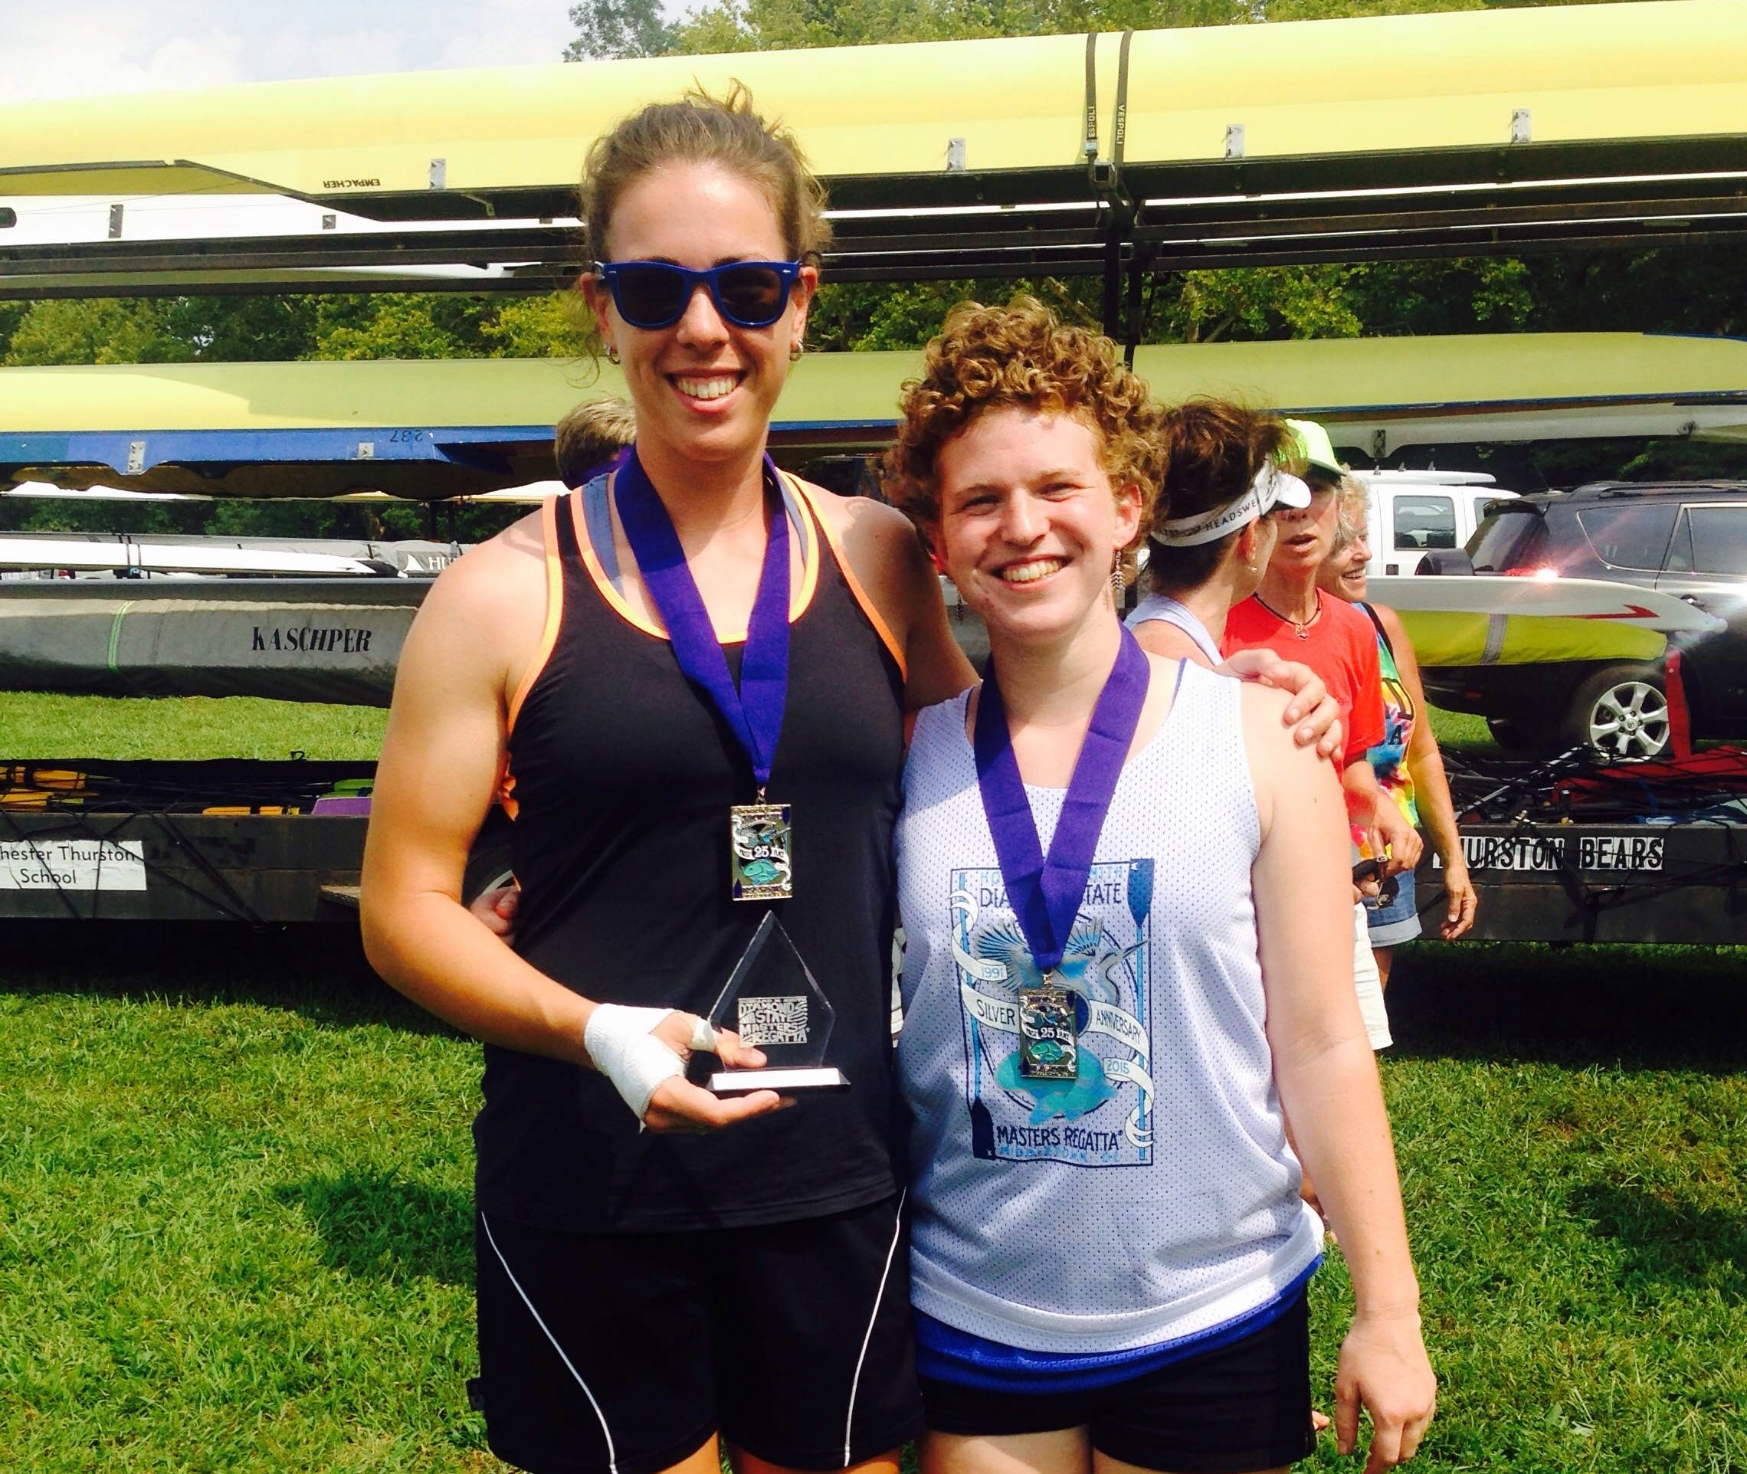 Suz & Liz 1st Place Diamond State Regatta 2015.JPG